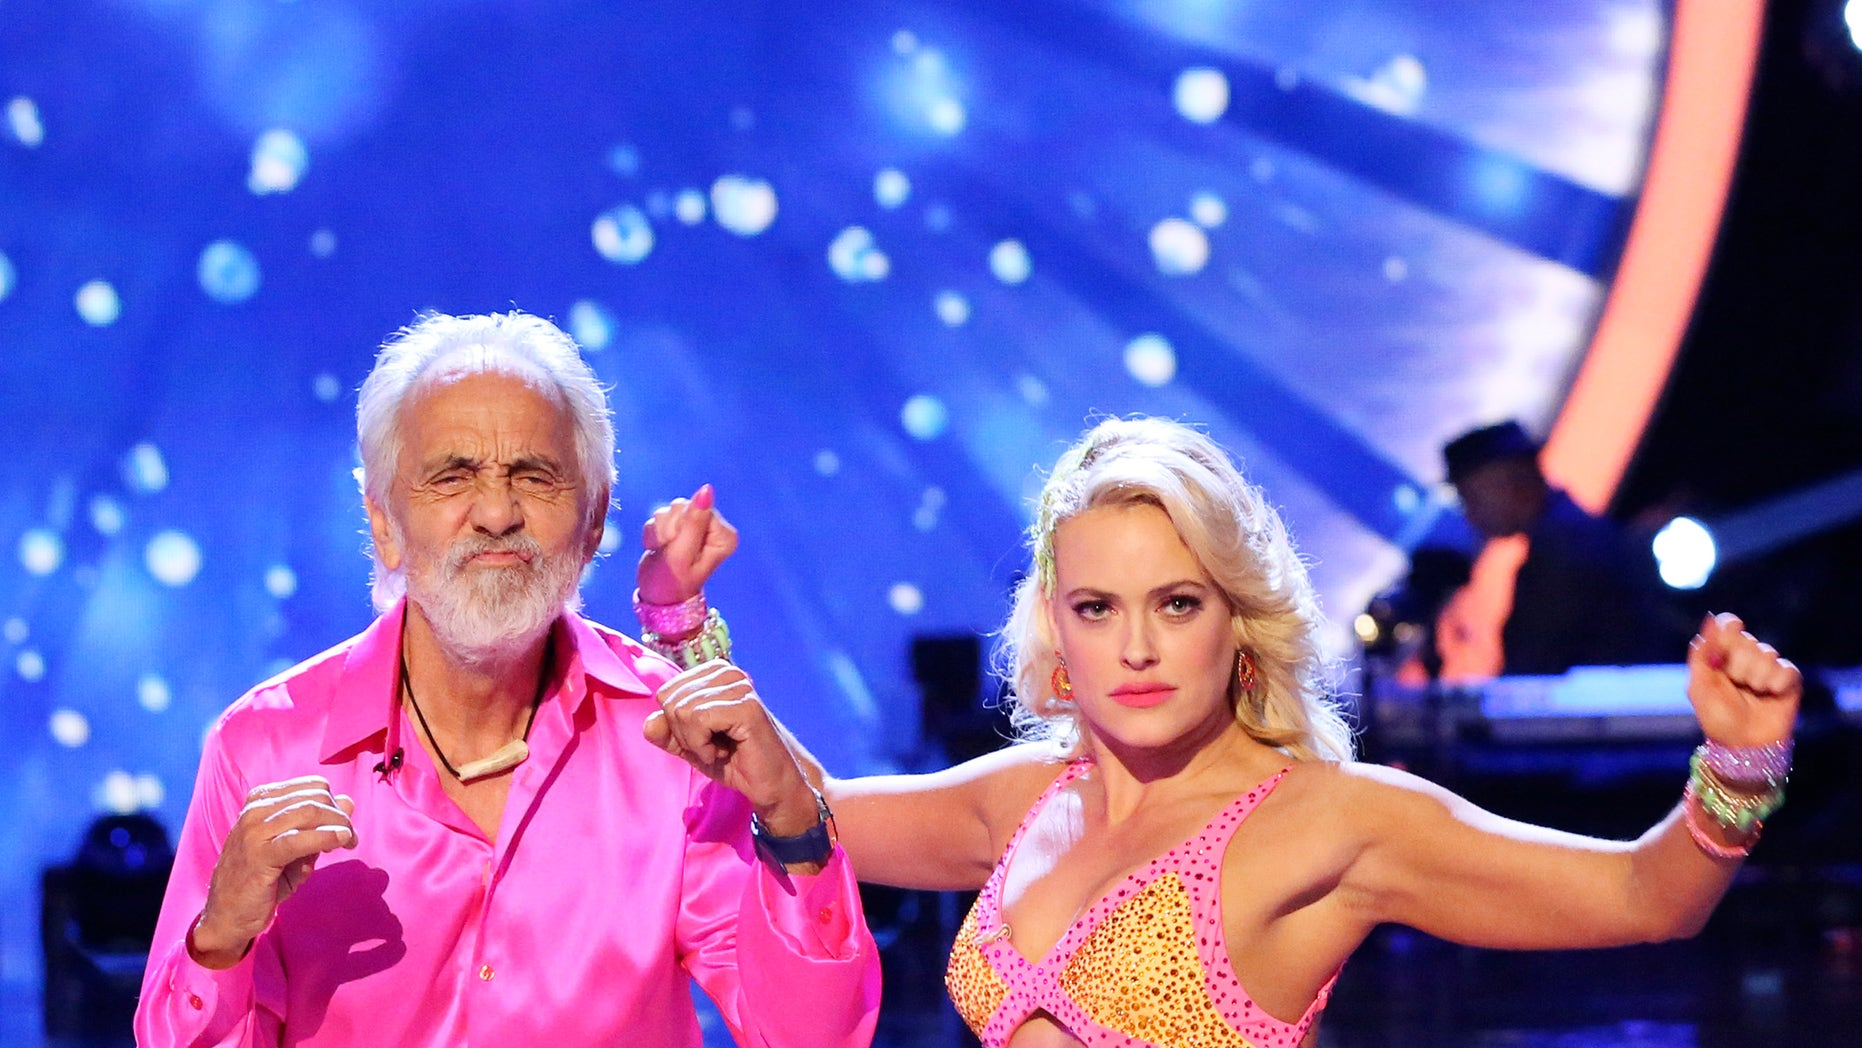 """Sept. 22, 2014. Tommy Chong, left, performs with Peta Murgatroyd on  Dancing with the Stars."""" The Nielsen company admitted Friday, Oct. 10, to errors dating back to March in its measurement of television viewing, statistics that serve as the foundation for billions of dollars in advertising spending for the entire broadcast industry."""